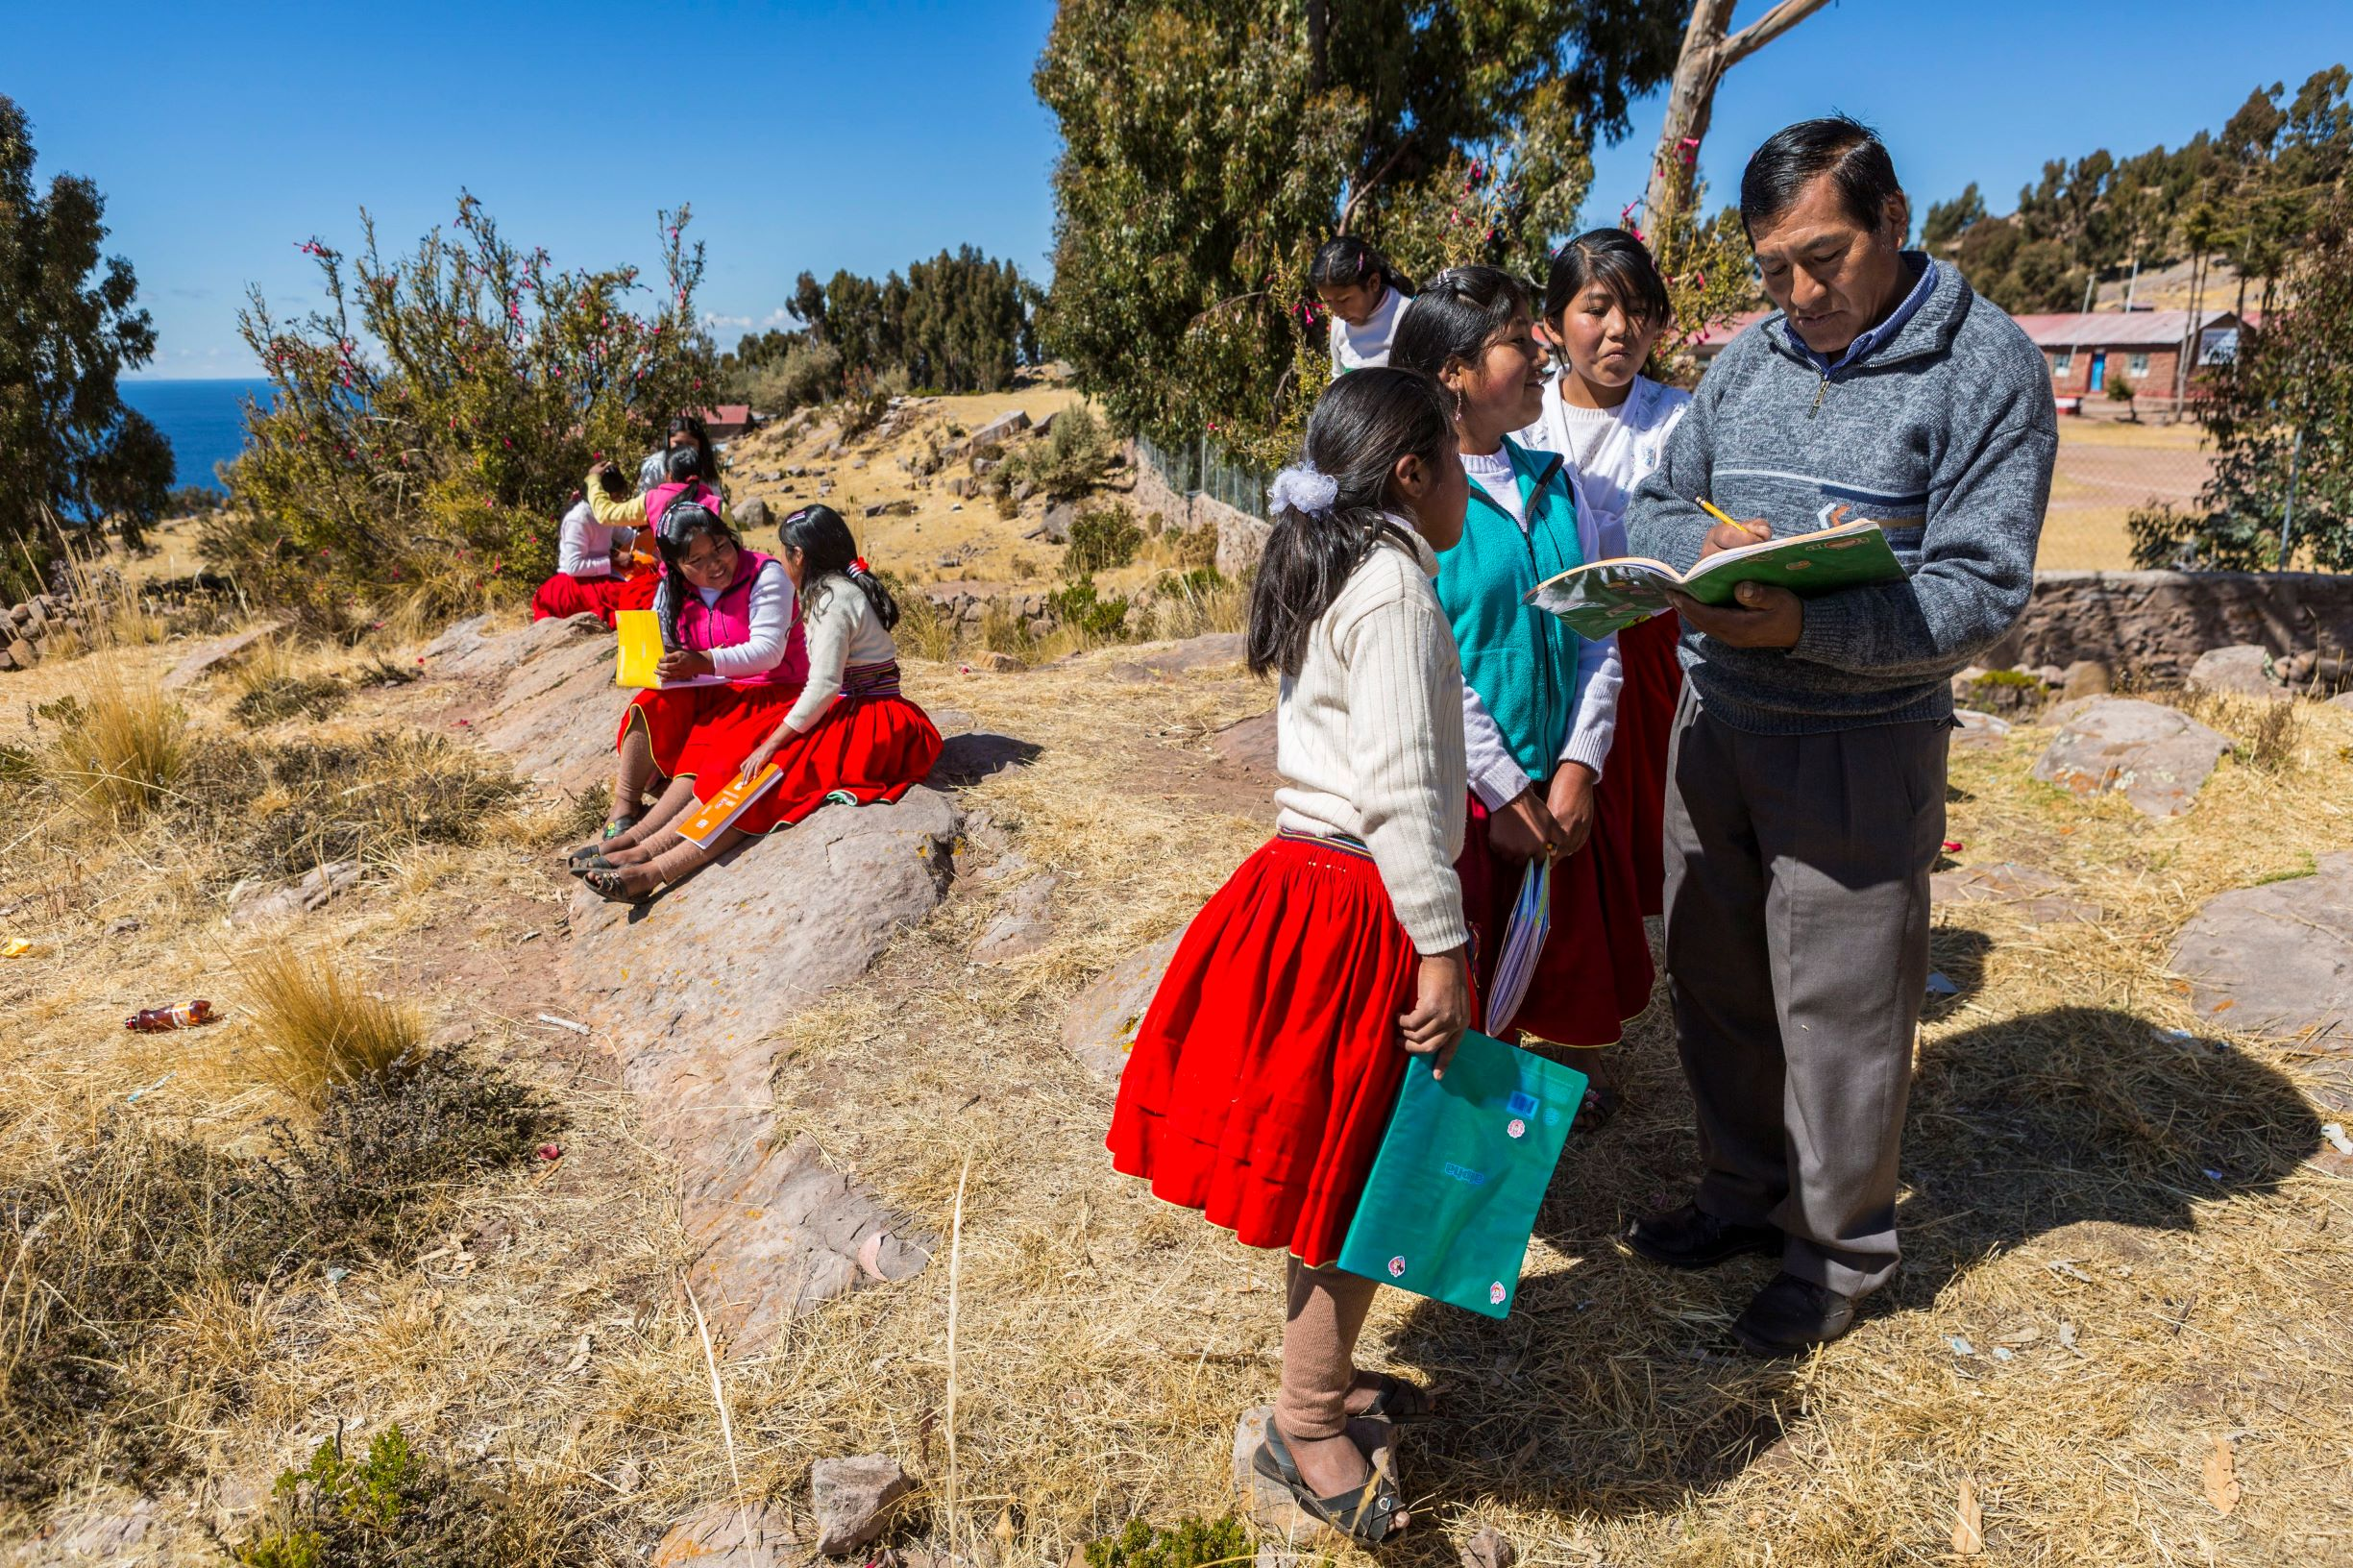 A teacher working with students in Puno province in Peru.